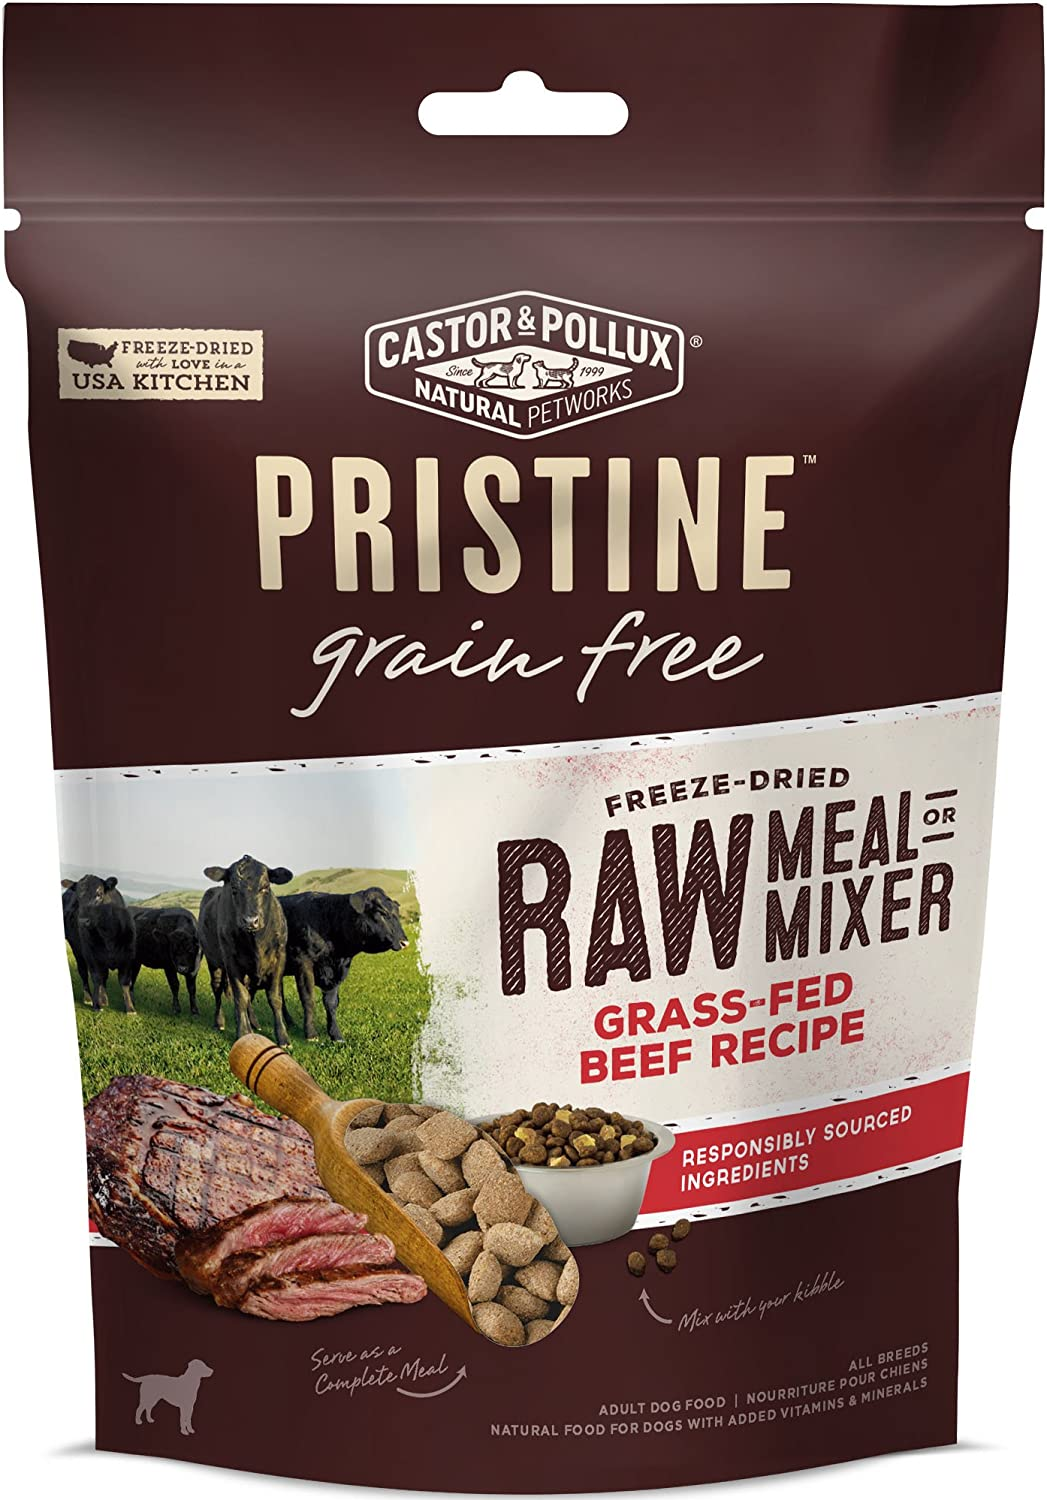 Castor Pollux Pristine Free-Range or Grass-Fed Protein Freeze Dried Raw Meal or Mixer Dog Food